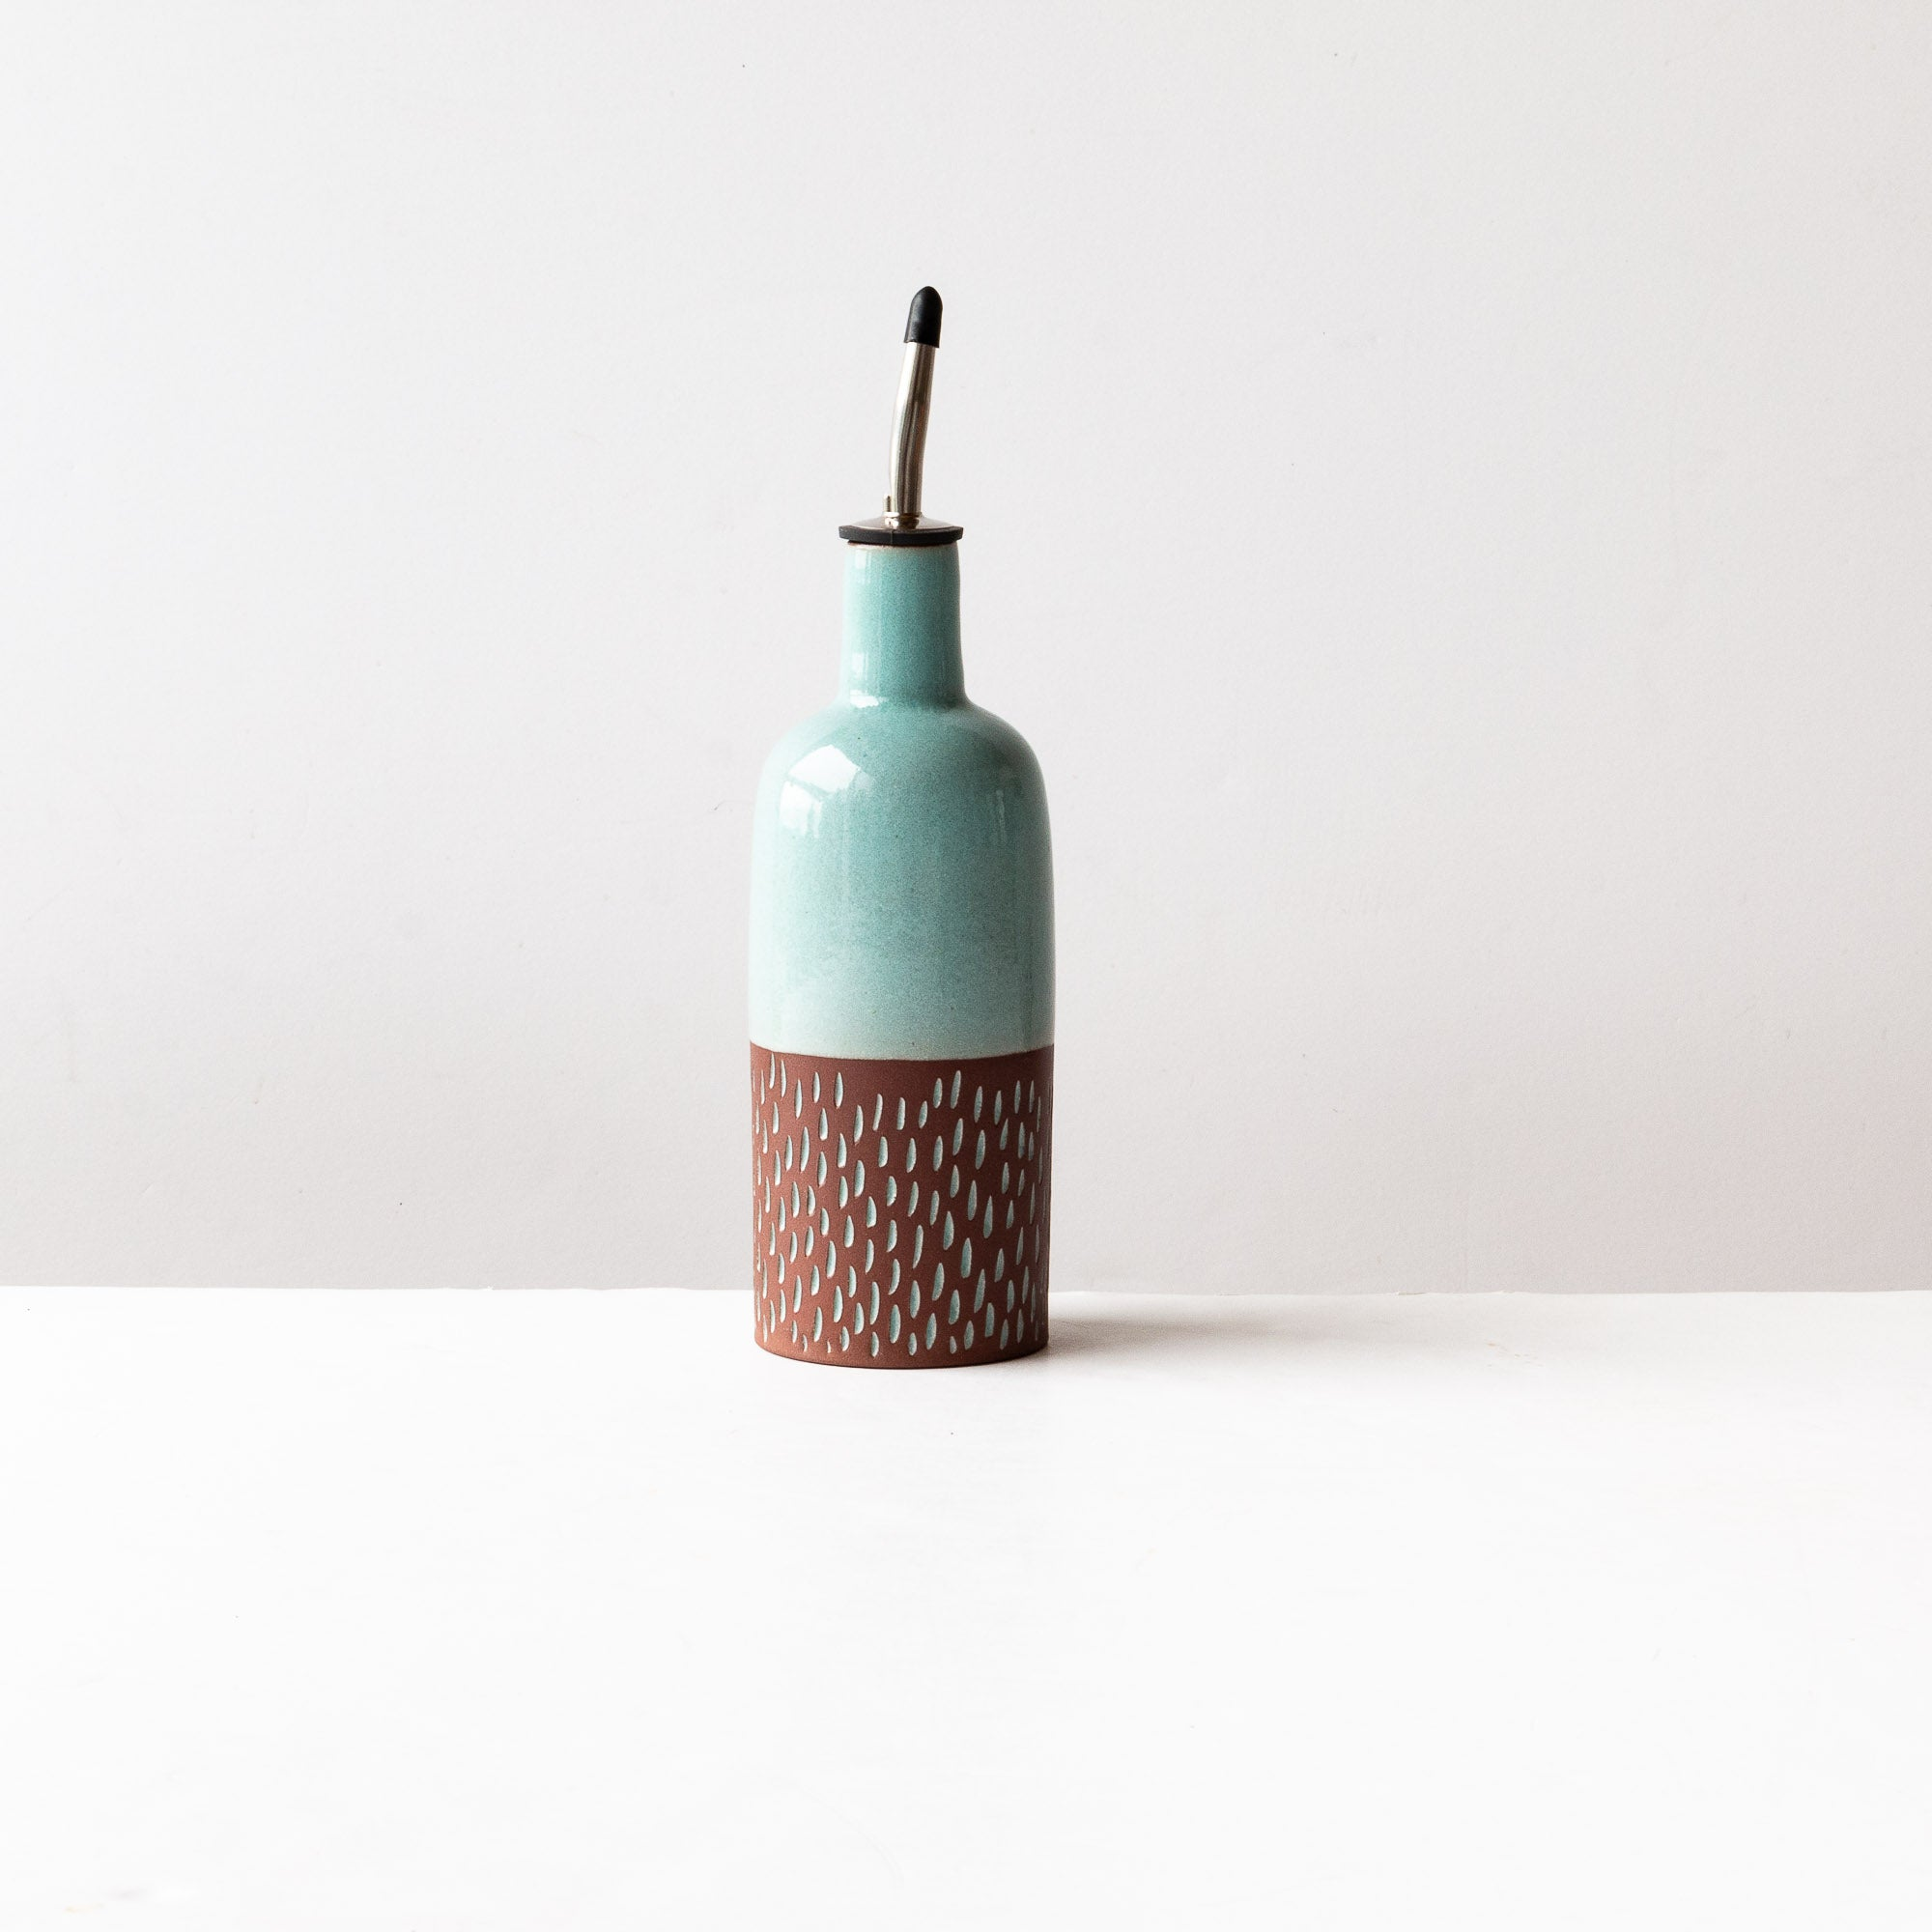 Oil or Vinegar Bottle - Handmade in Dark Red Clay Pottery